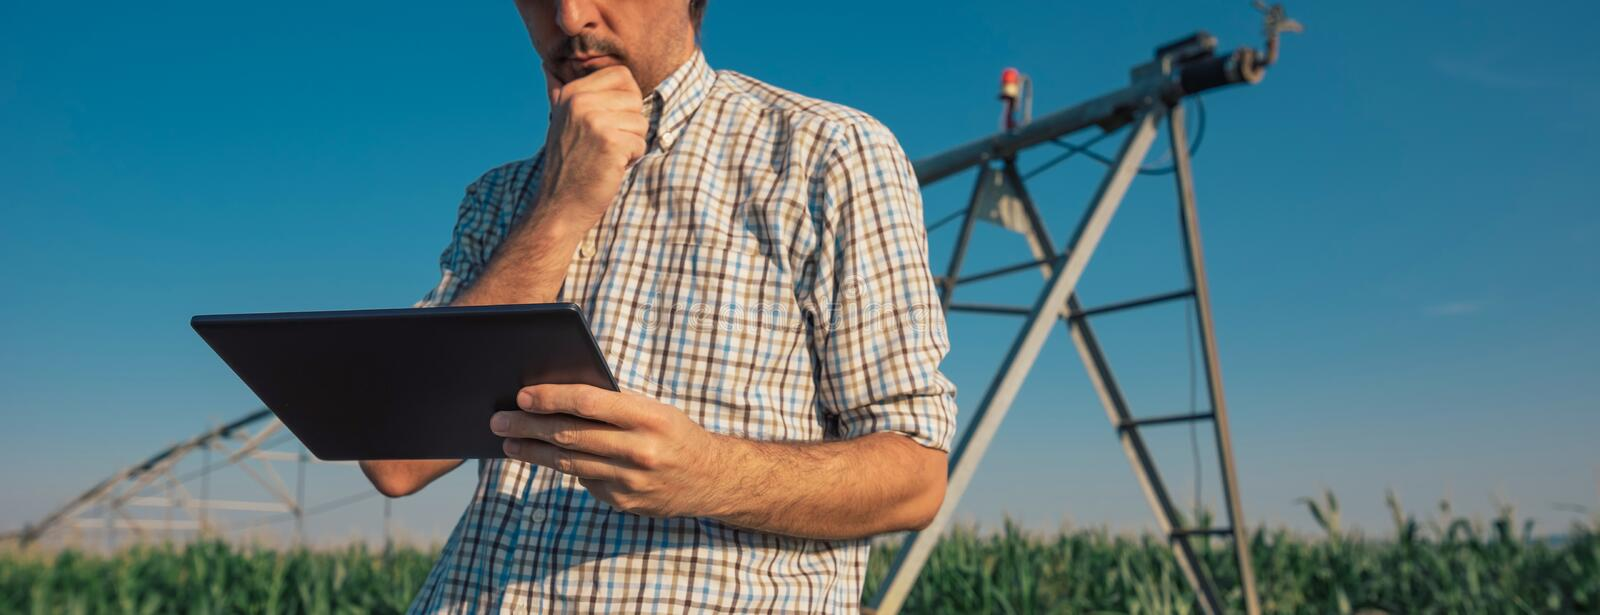 Farmer using tablet computer in cornfield with irrigation system royalty free stock photography